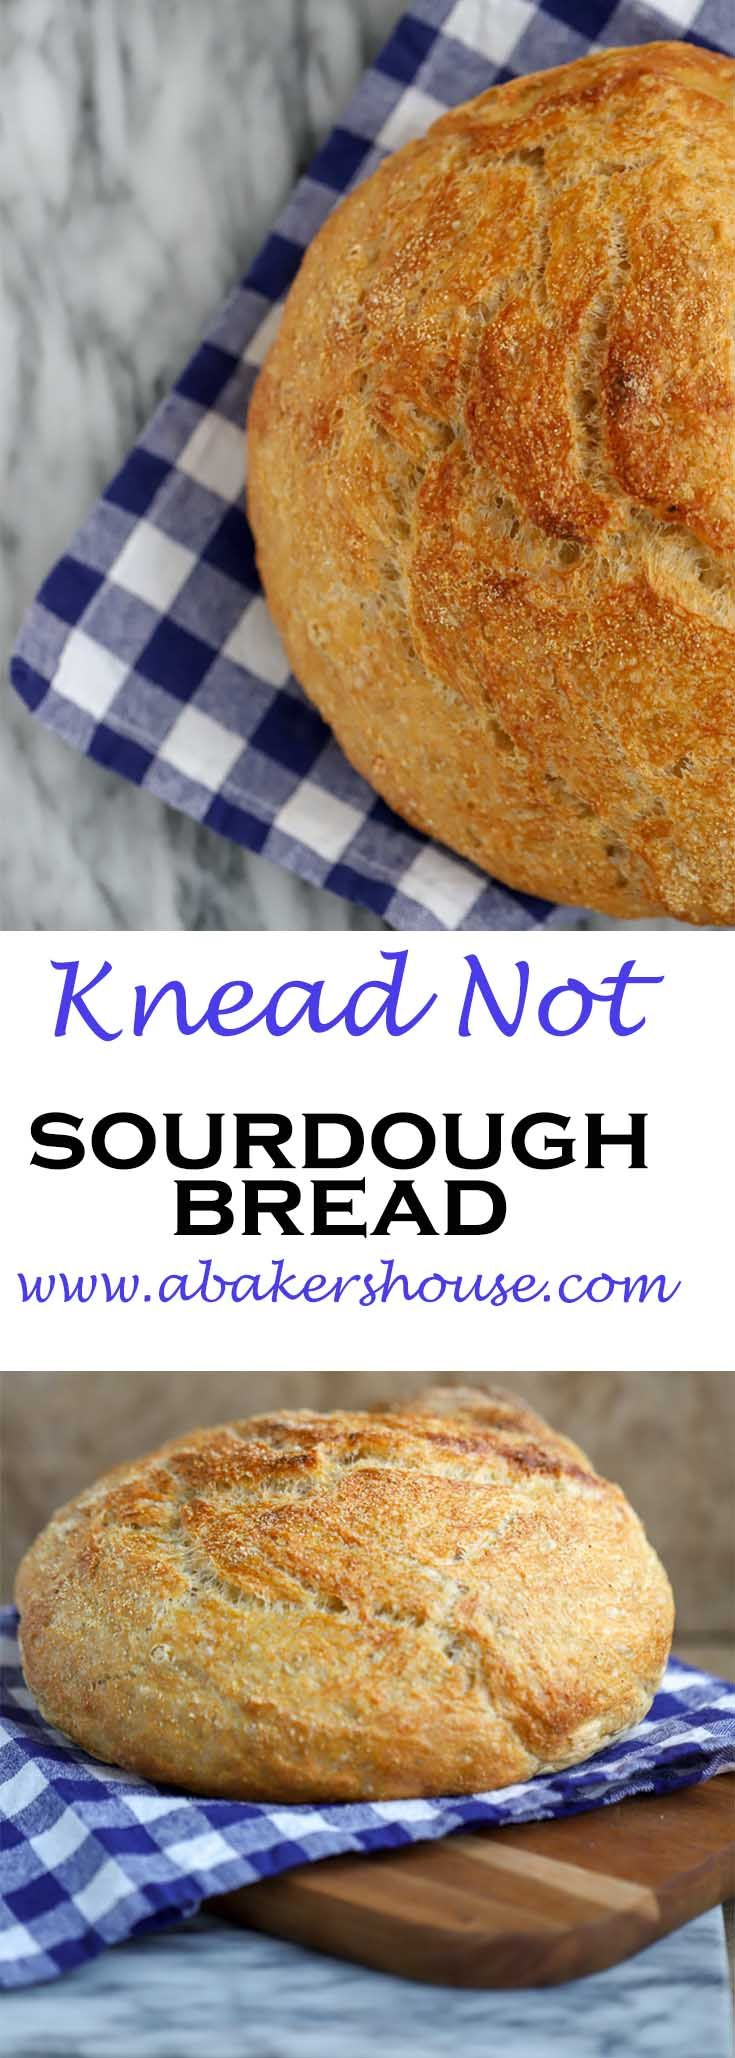 No fussing with kneading here with this Alton Brown recipe for Knead Not Sourdough Bread. Made by Holly Baker at www.abakershouse.com